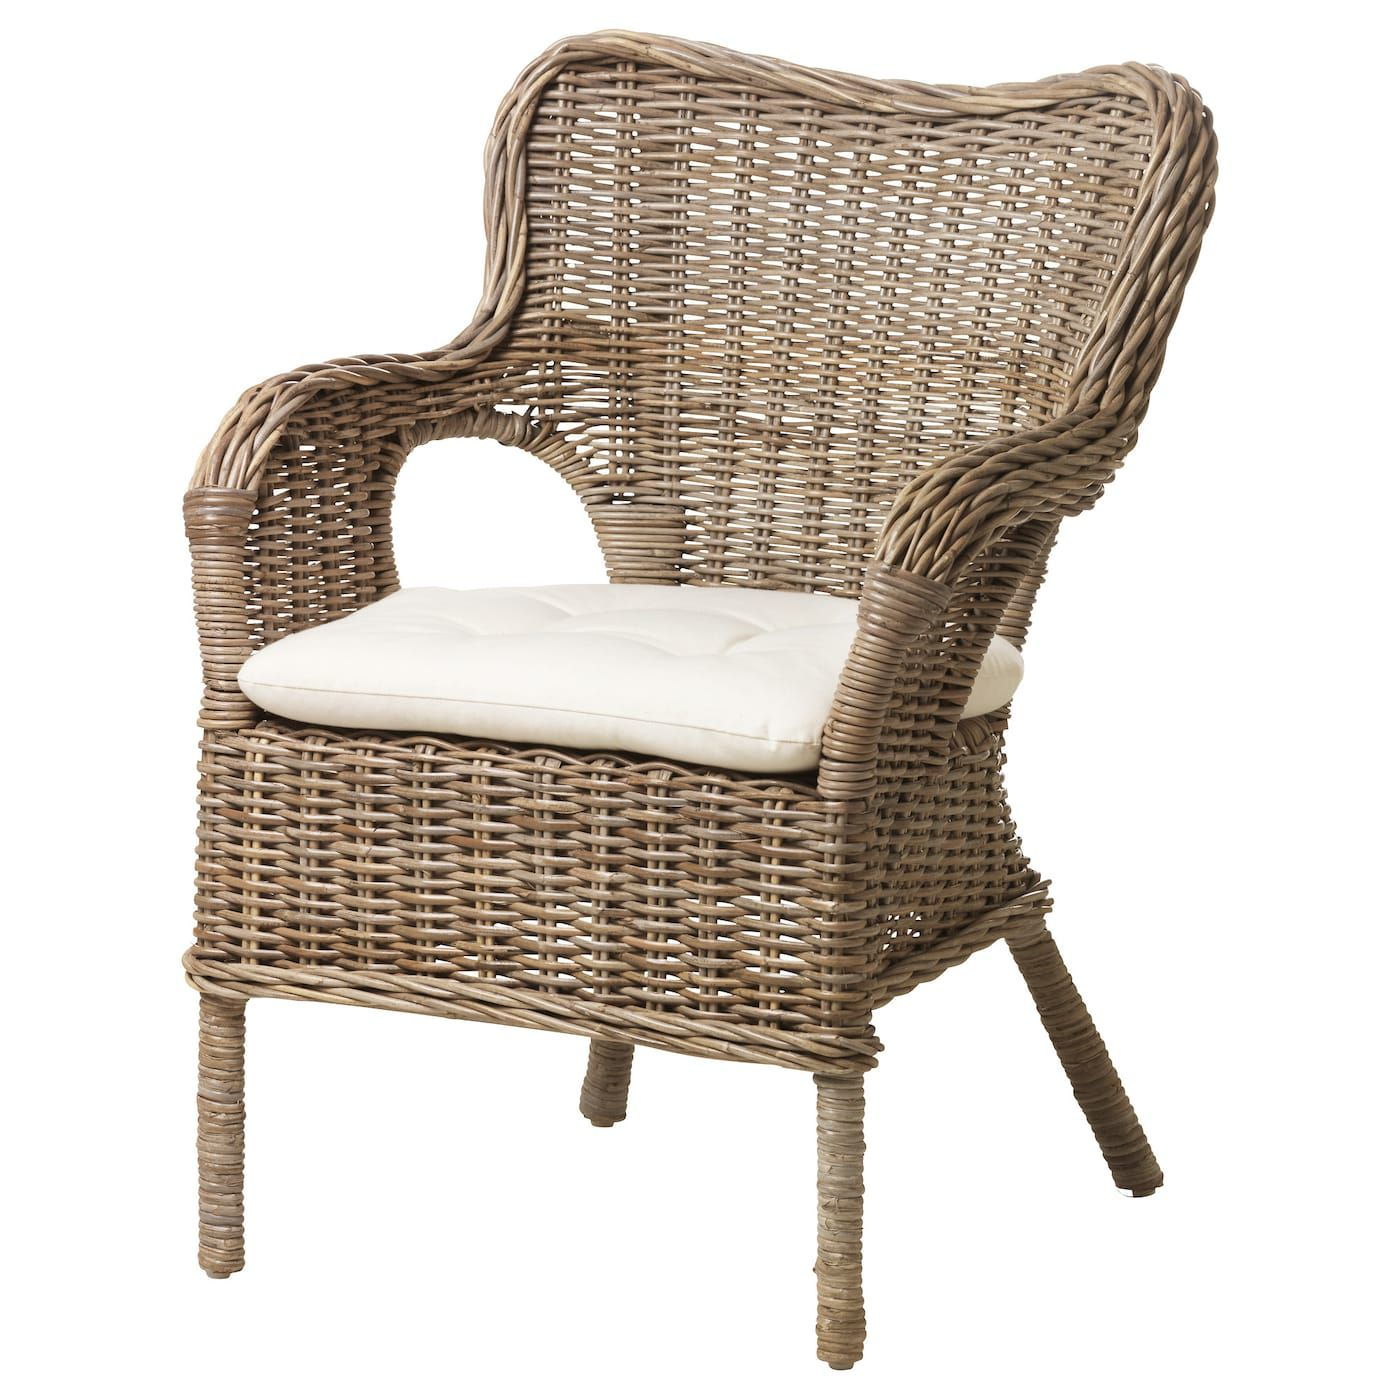 Ikea Us Furniture And Home Furnishings Ikea Wicker Chair Ikea Armchair Furniture